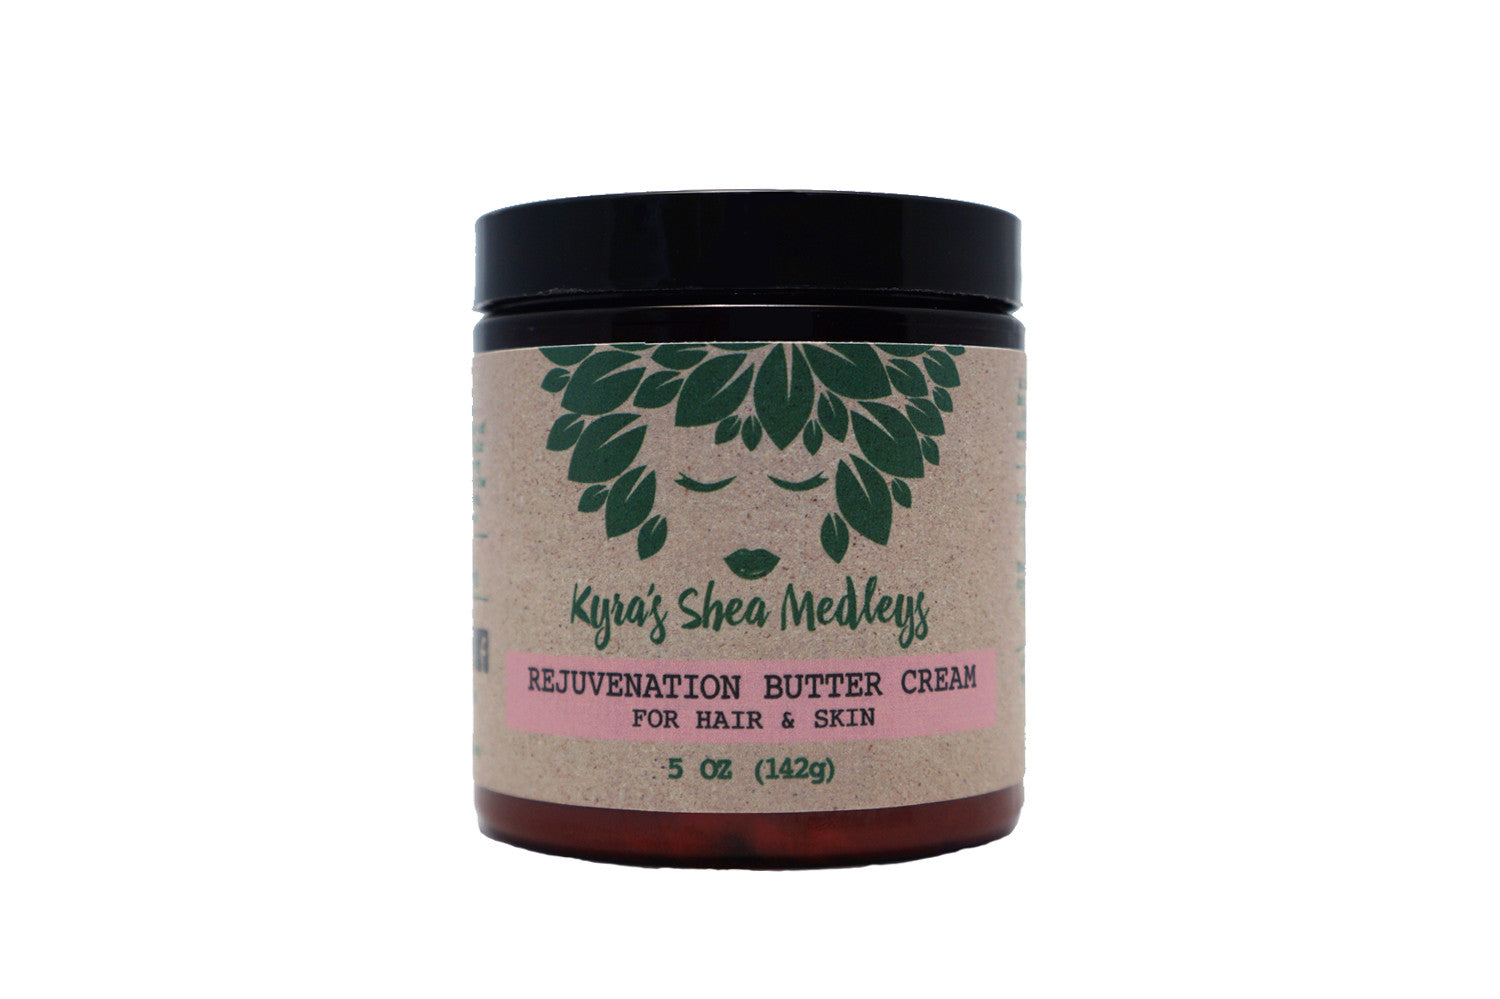 Rejuvenation Shea Butter Cream Balm with Cocoa, Kokum and Peppermint for Hair, Skin and Nails